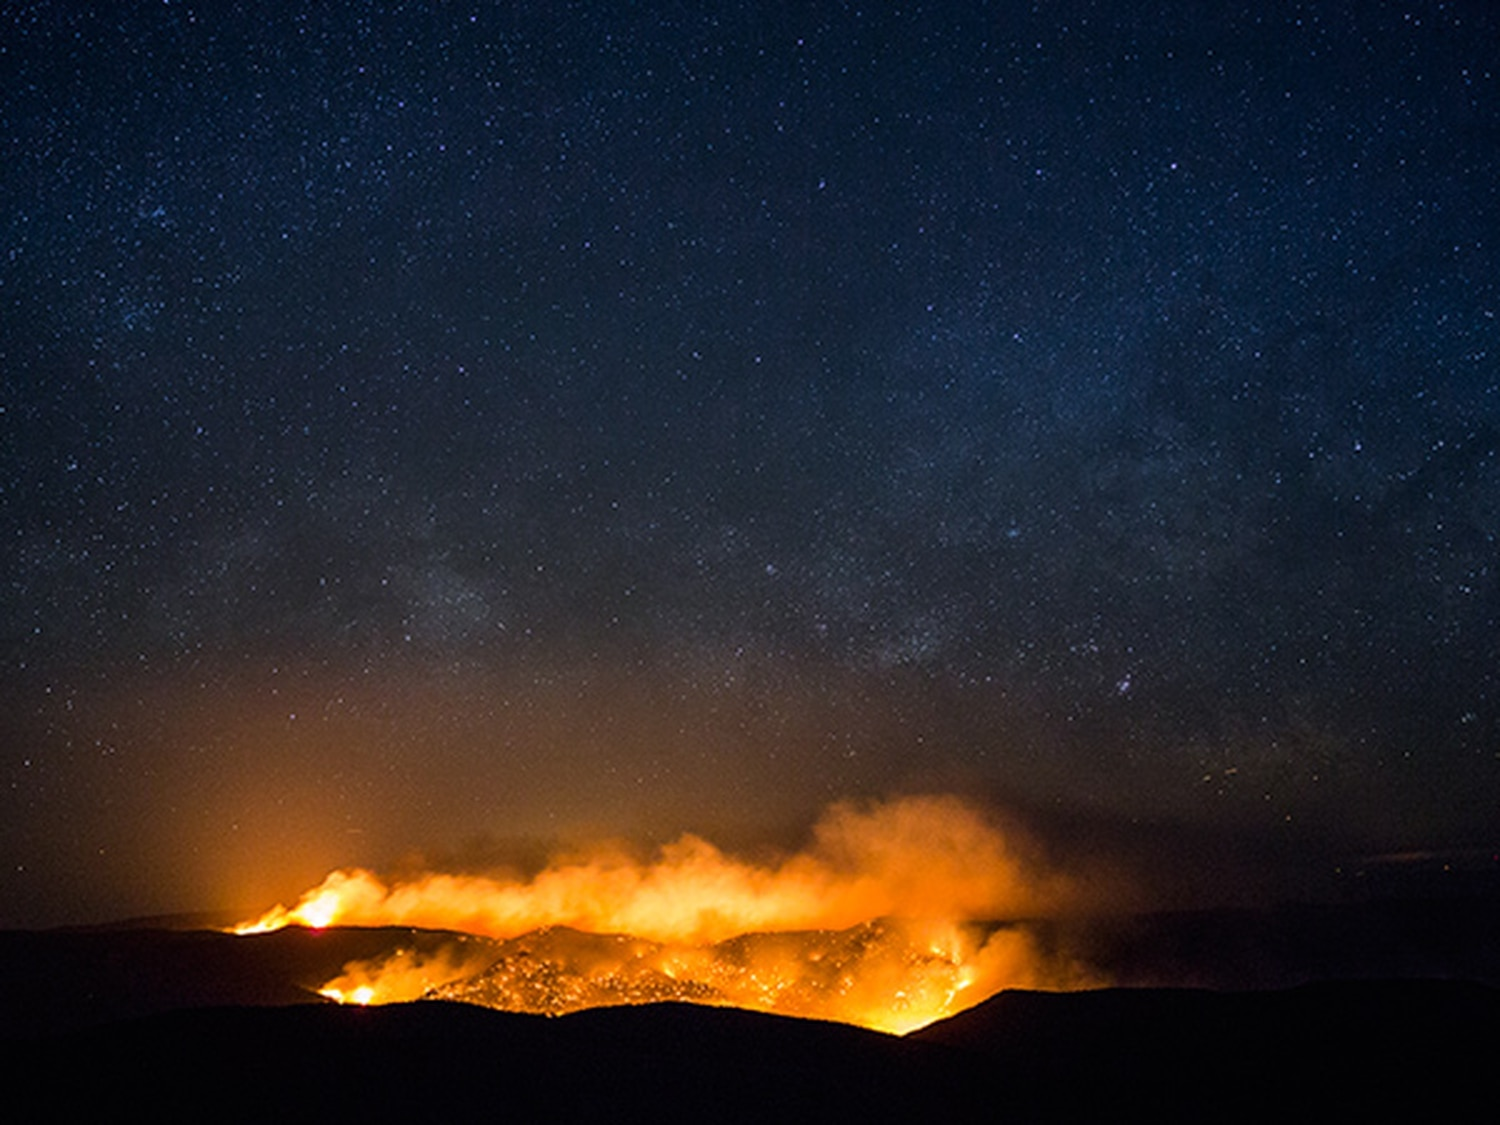 Although both the Tres Lagunas and Thompson Ridge fires have been contained, northern New Mexico's Jaroso Fire (7,902 acres, 0 percent contained) and southern NM's Silver Fire (81,363 acres, 20 percent contained) remain active as of press time.